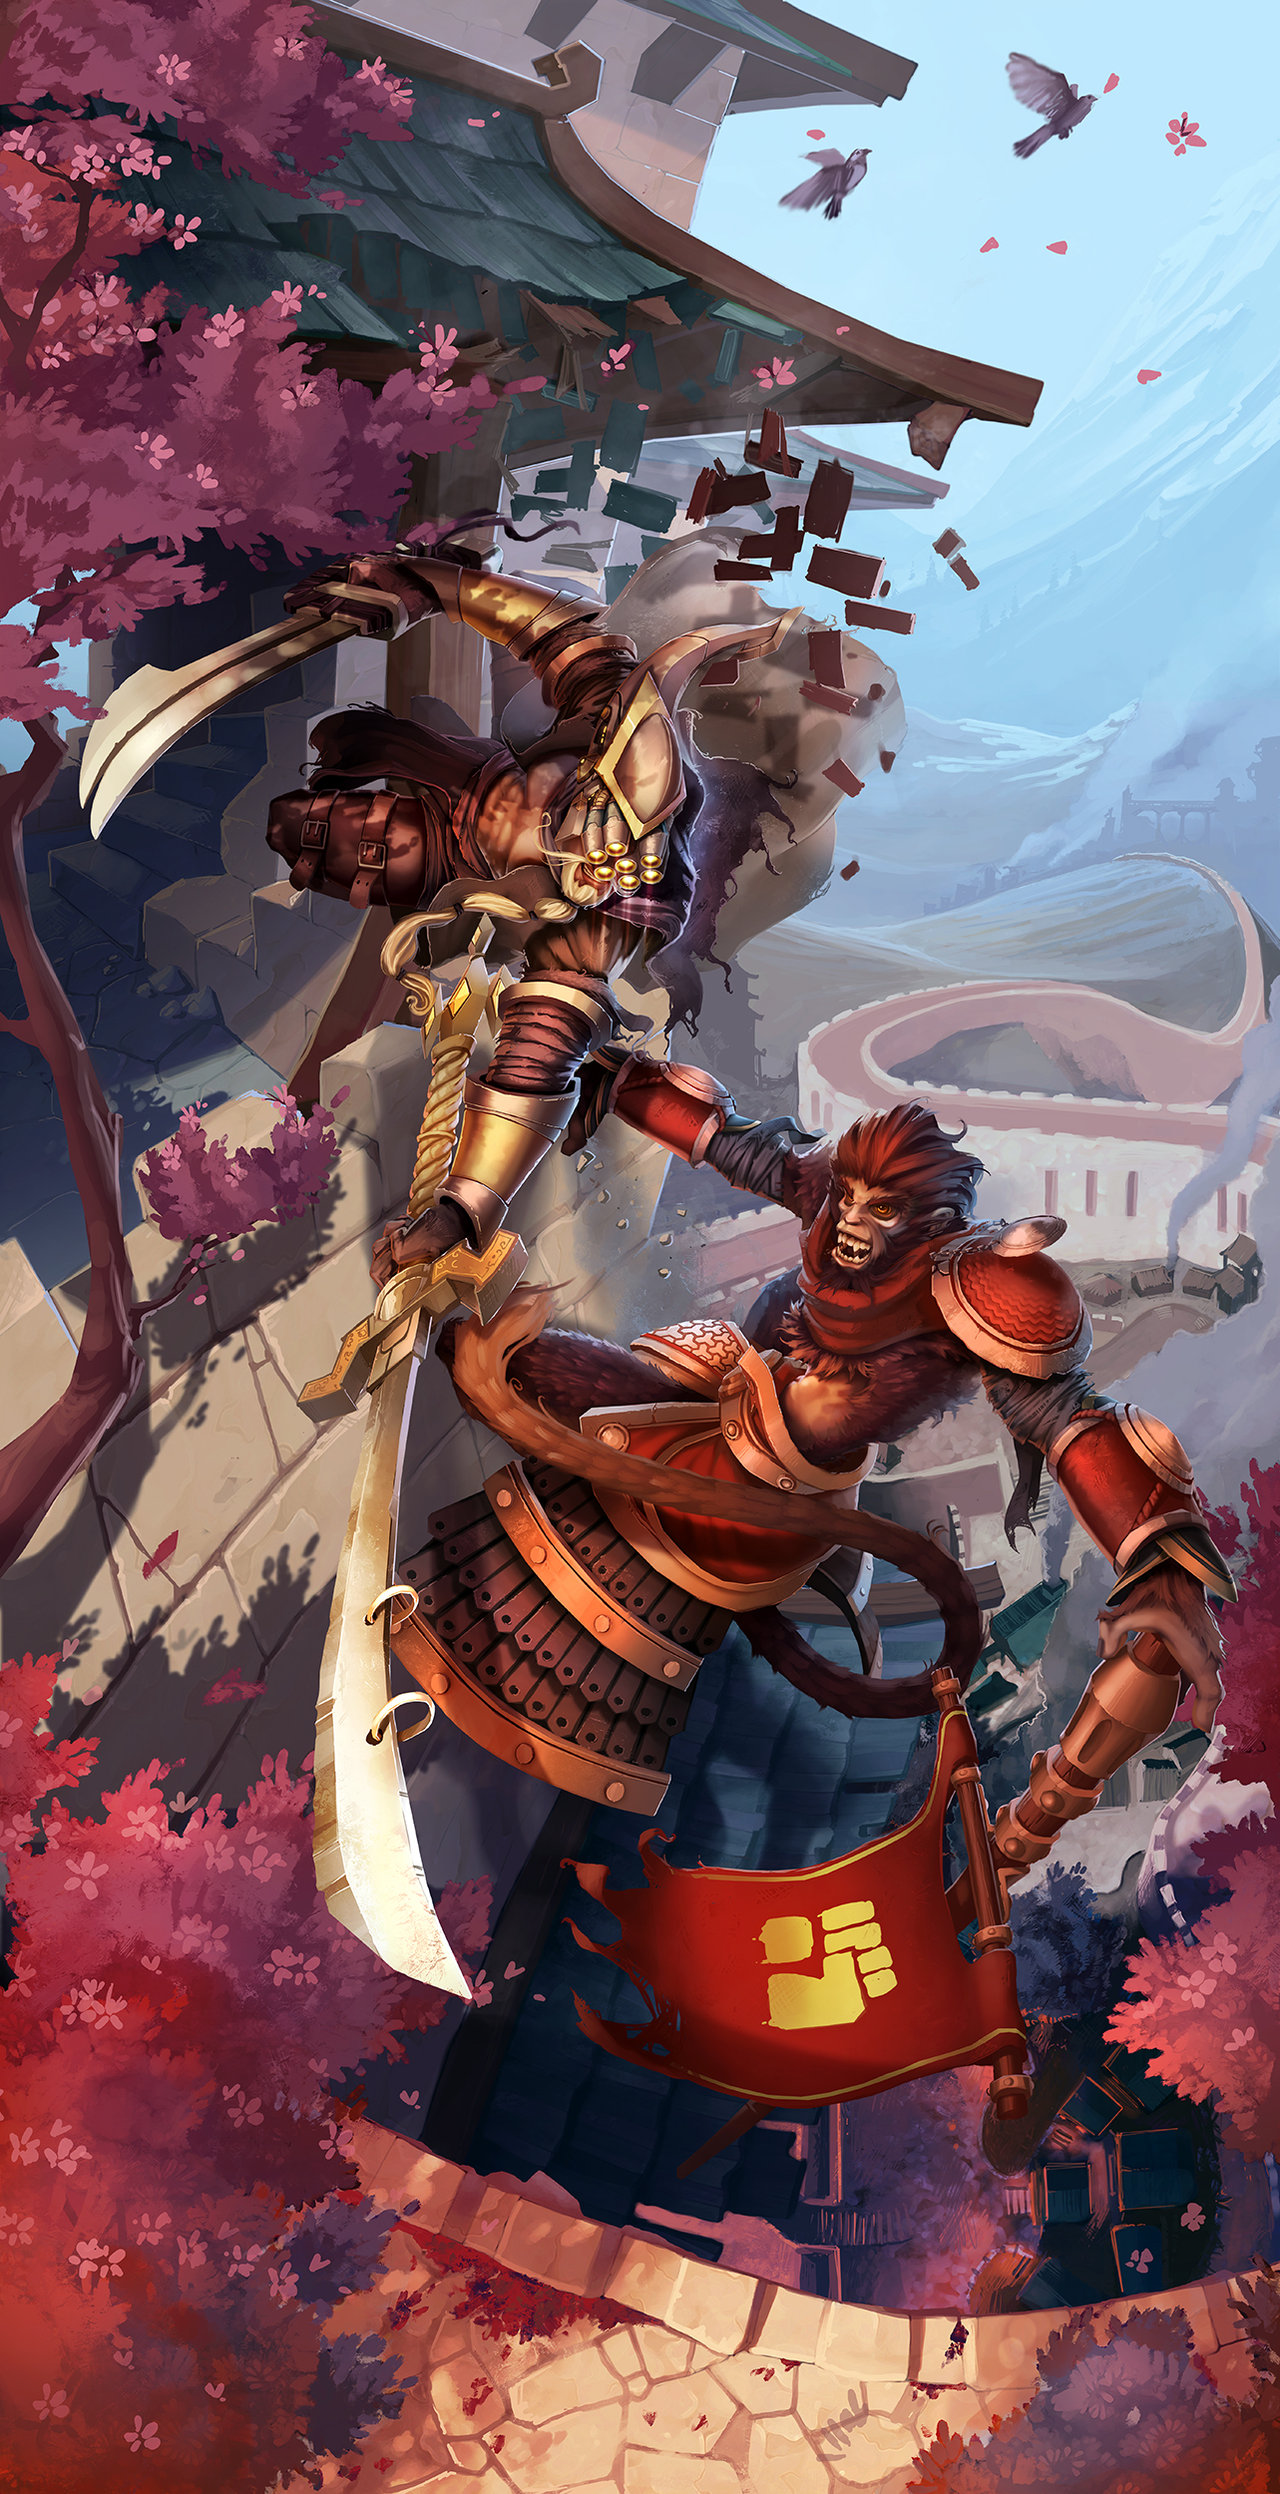 Master Yi and Wukong